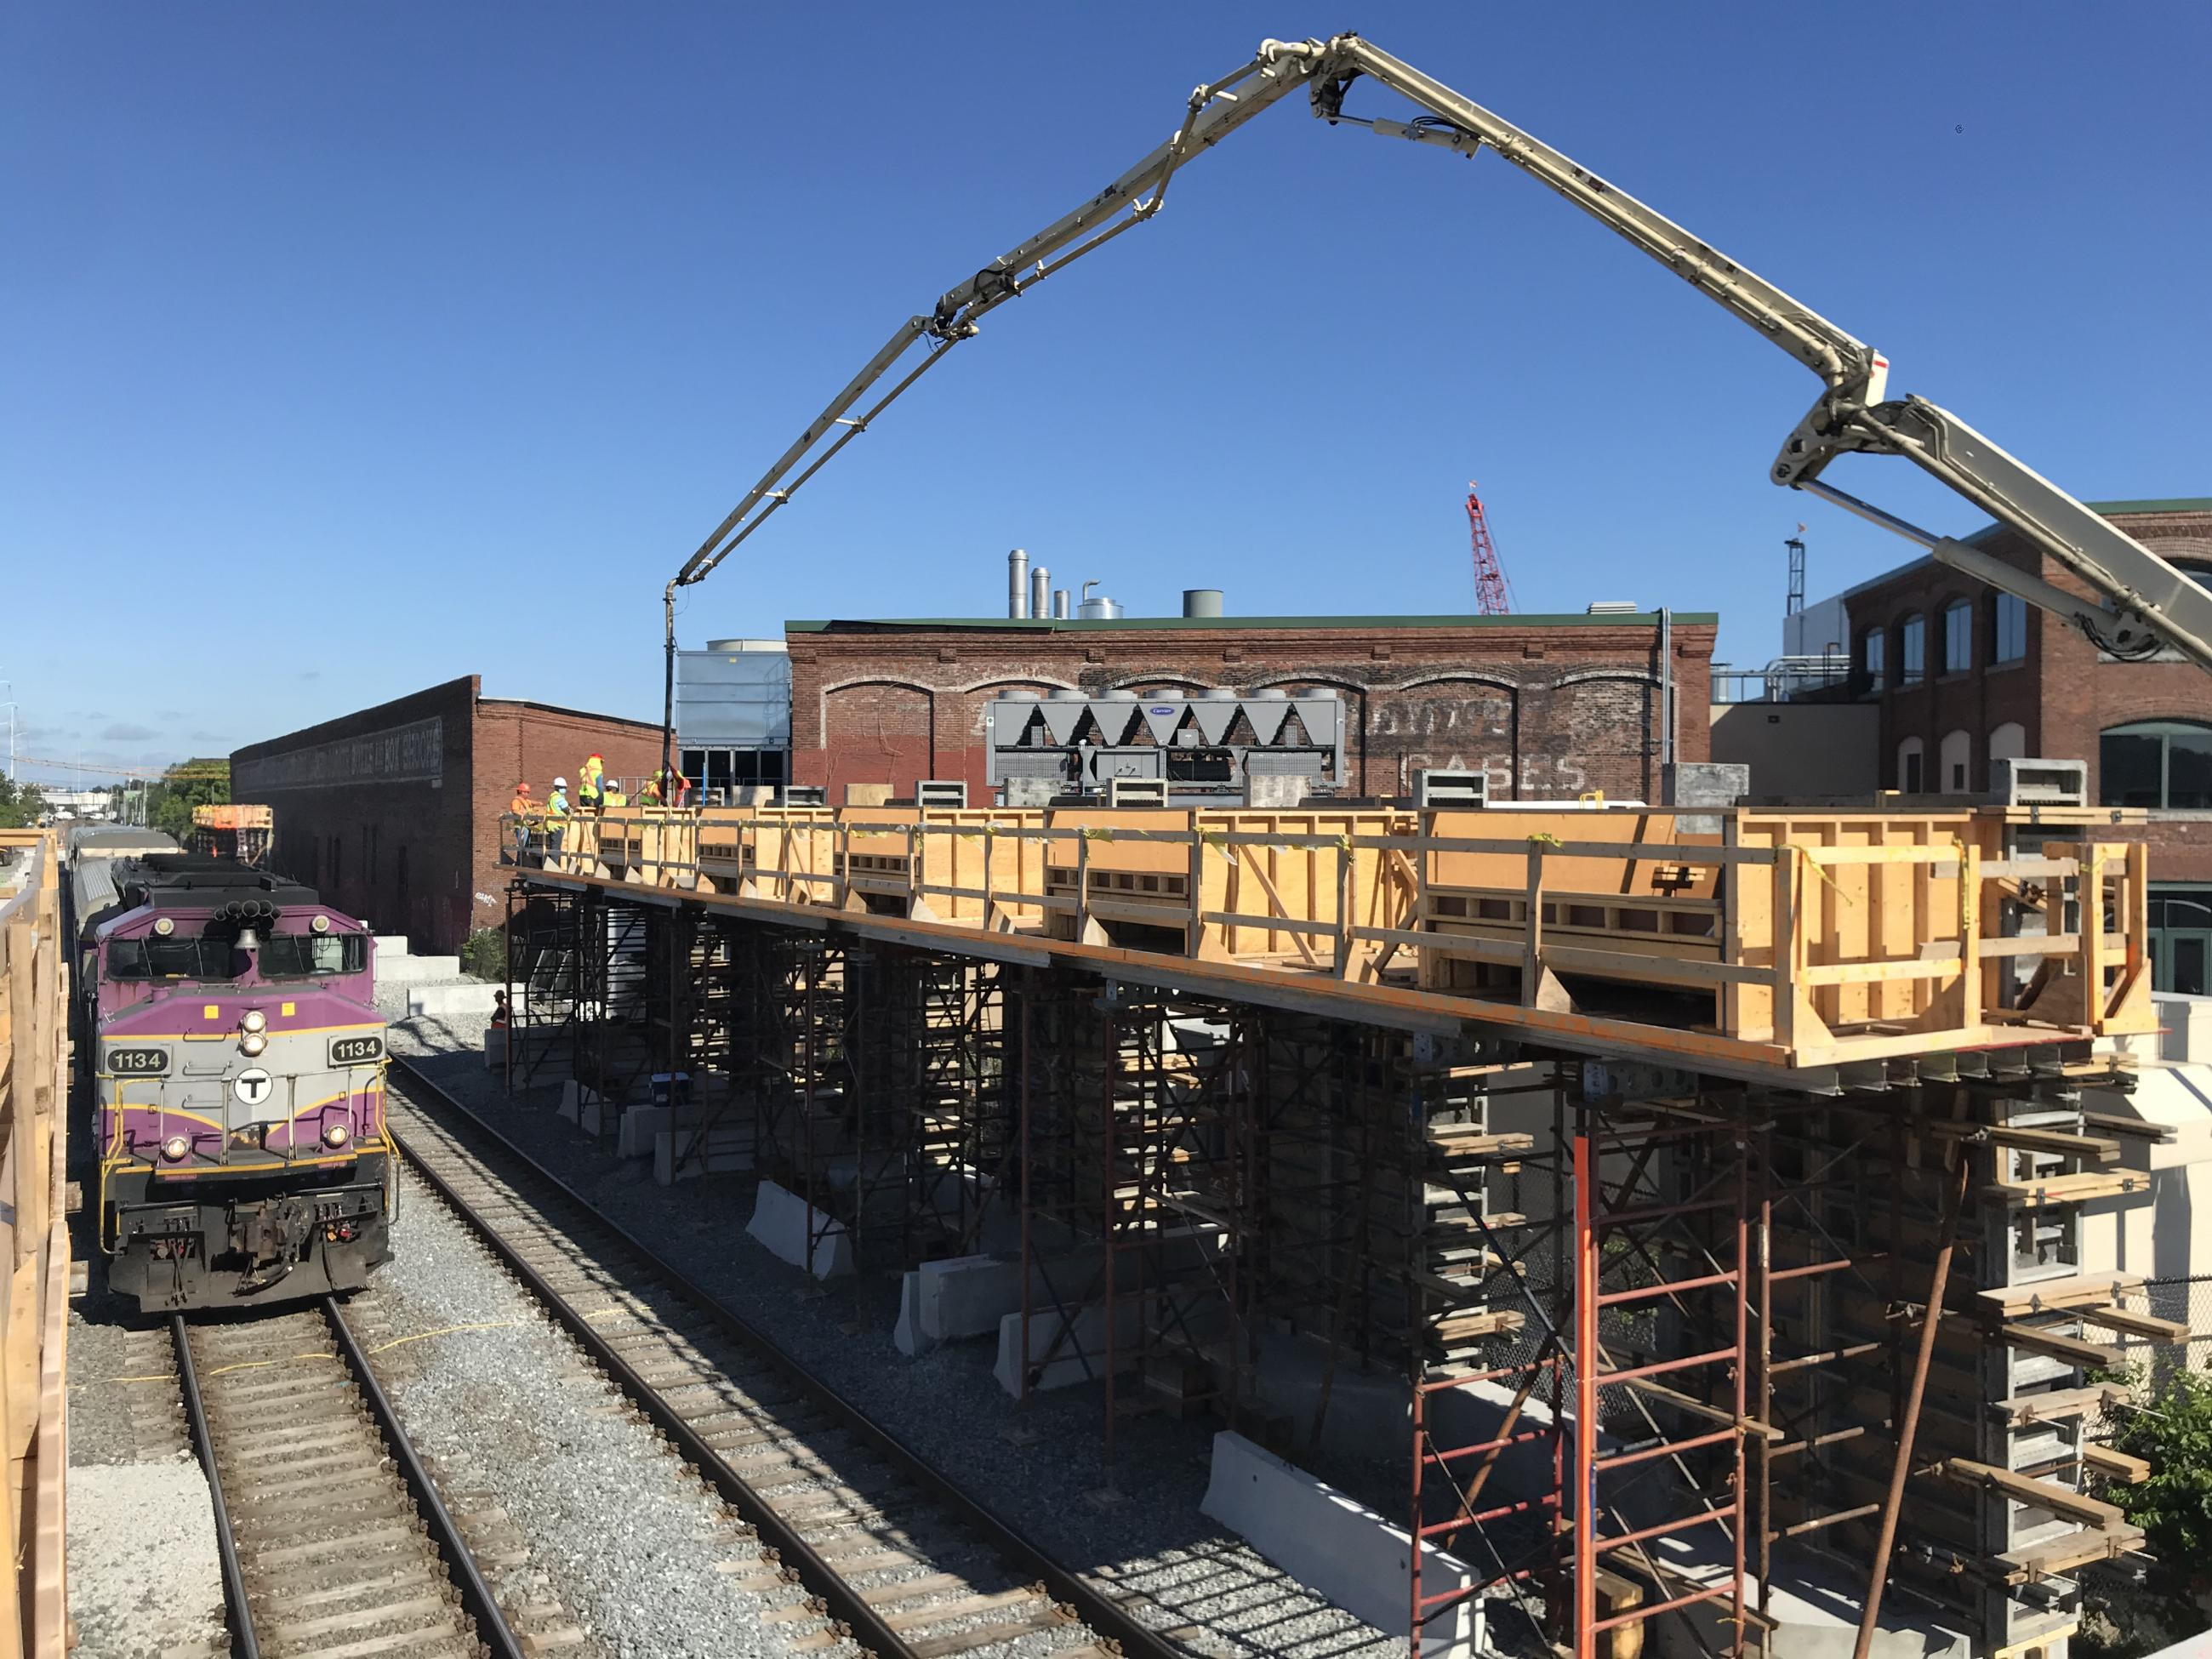 The new walls for the inbound platform are installed at Chelsea Commuter Rail Station